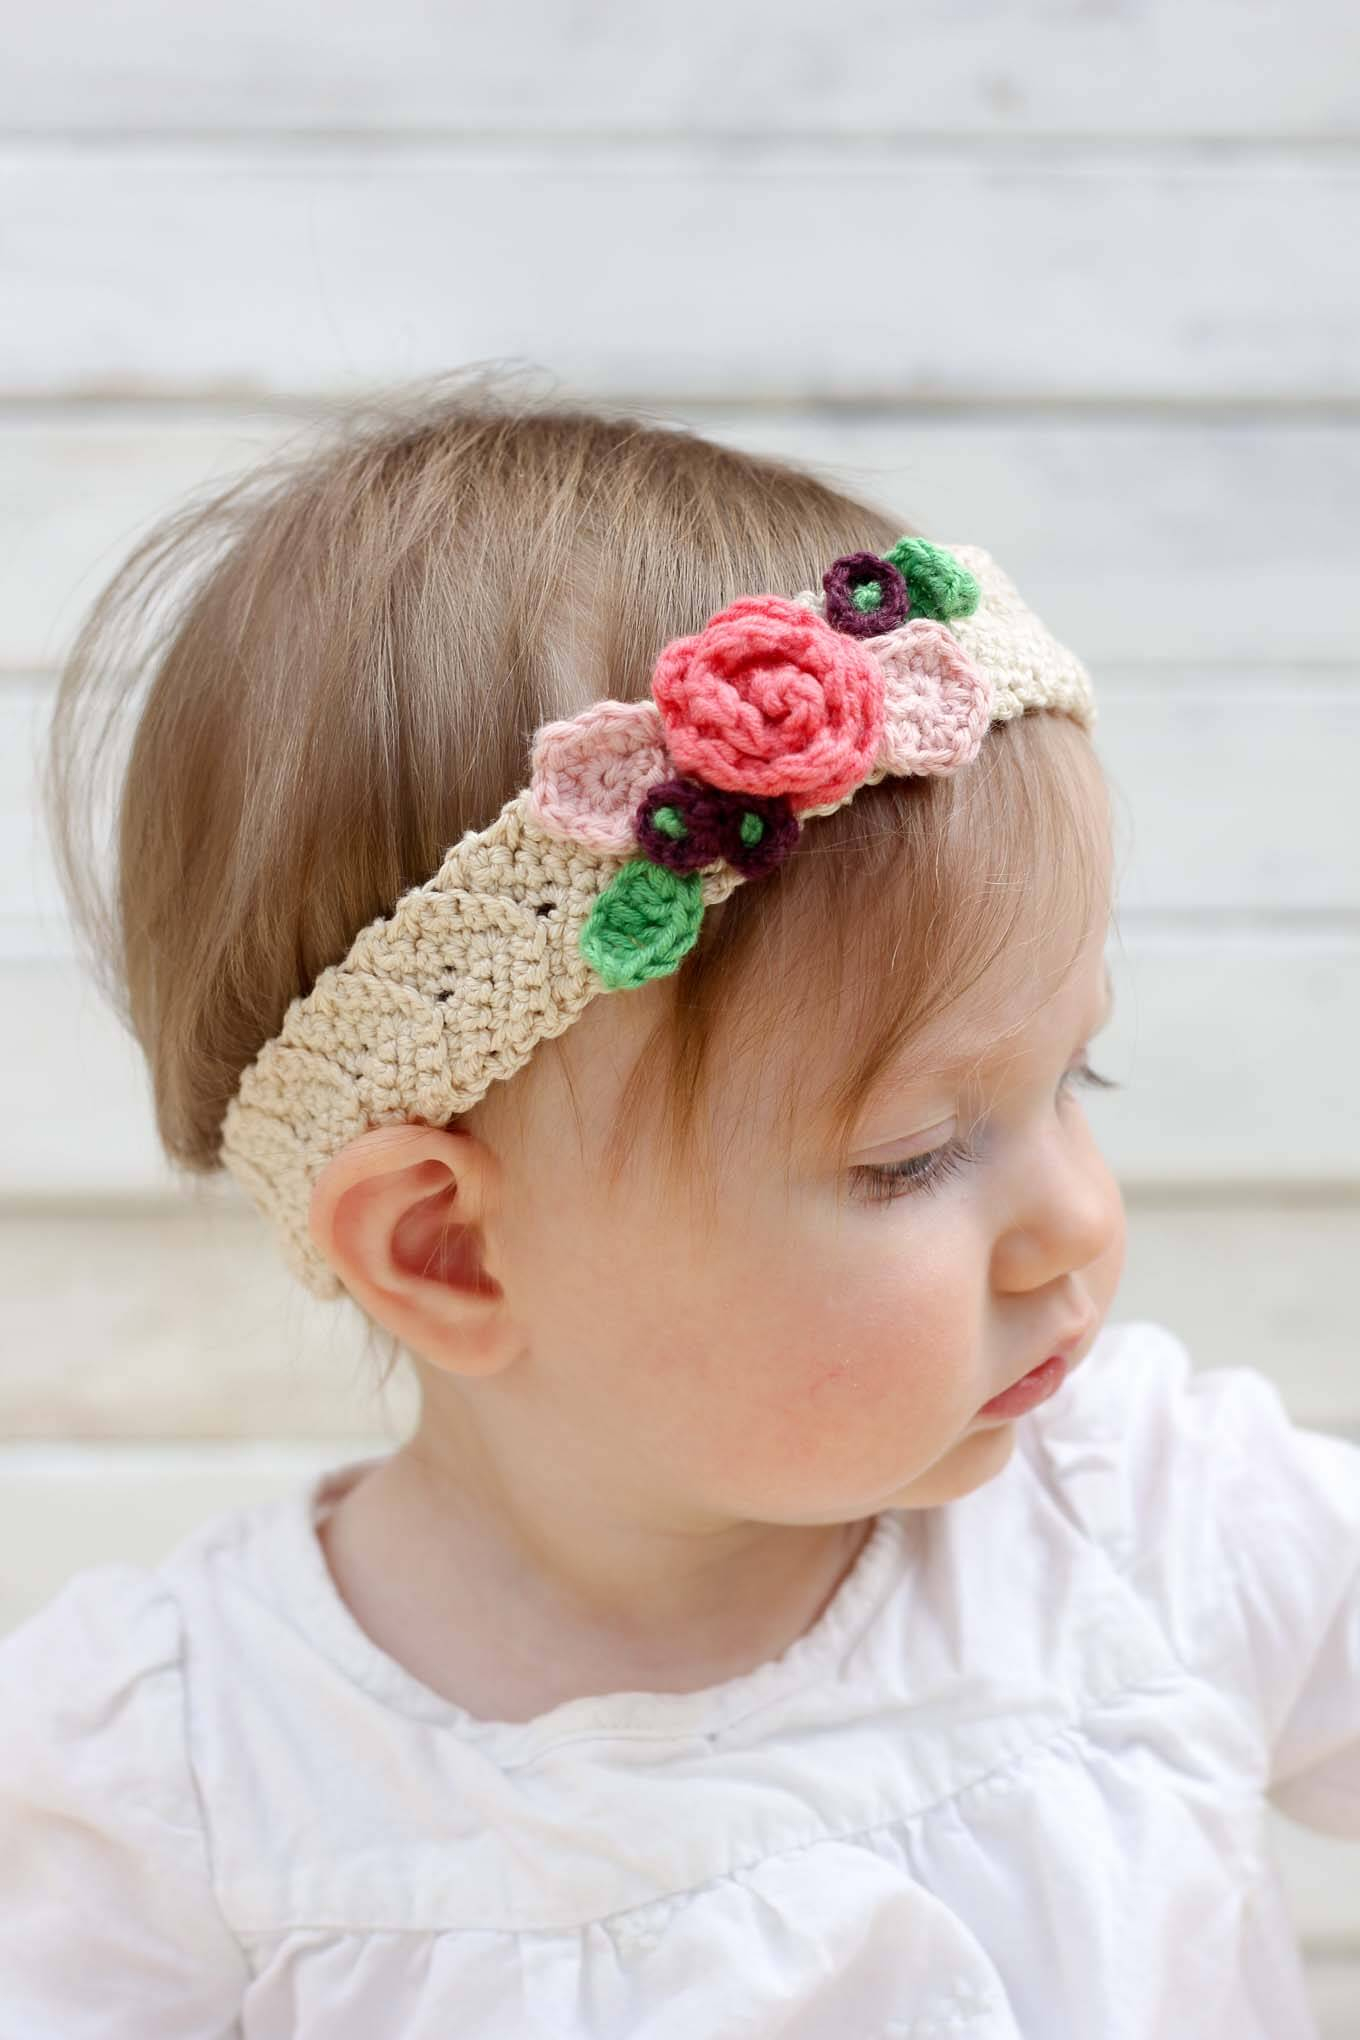 Knit Headband Pattern With Flower Free Crochet Headband Pattern With Flower Crochet And Knit